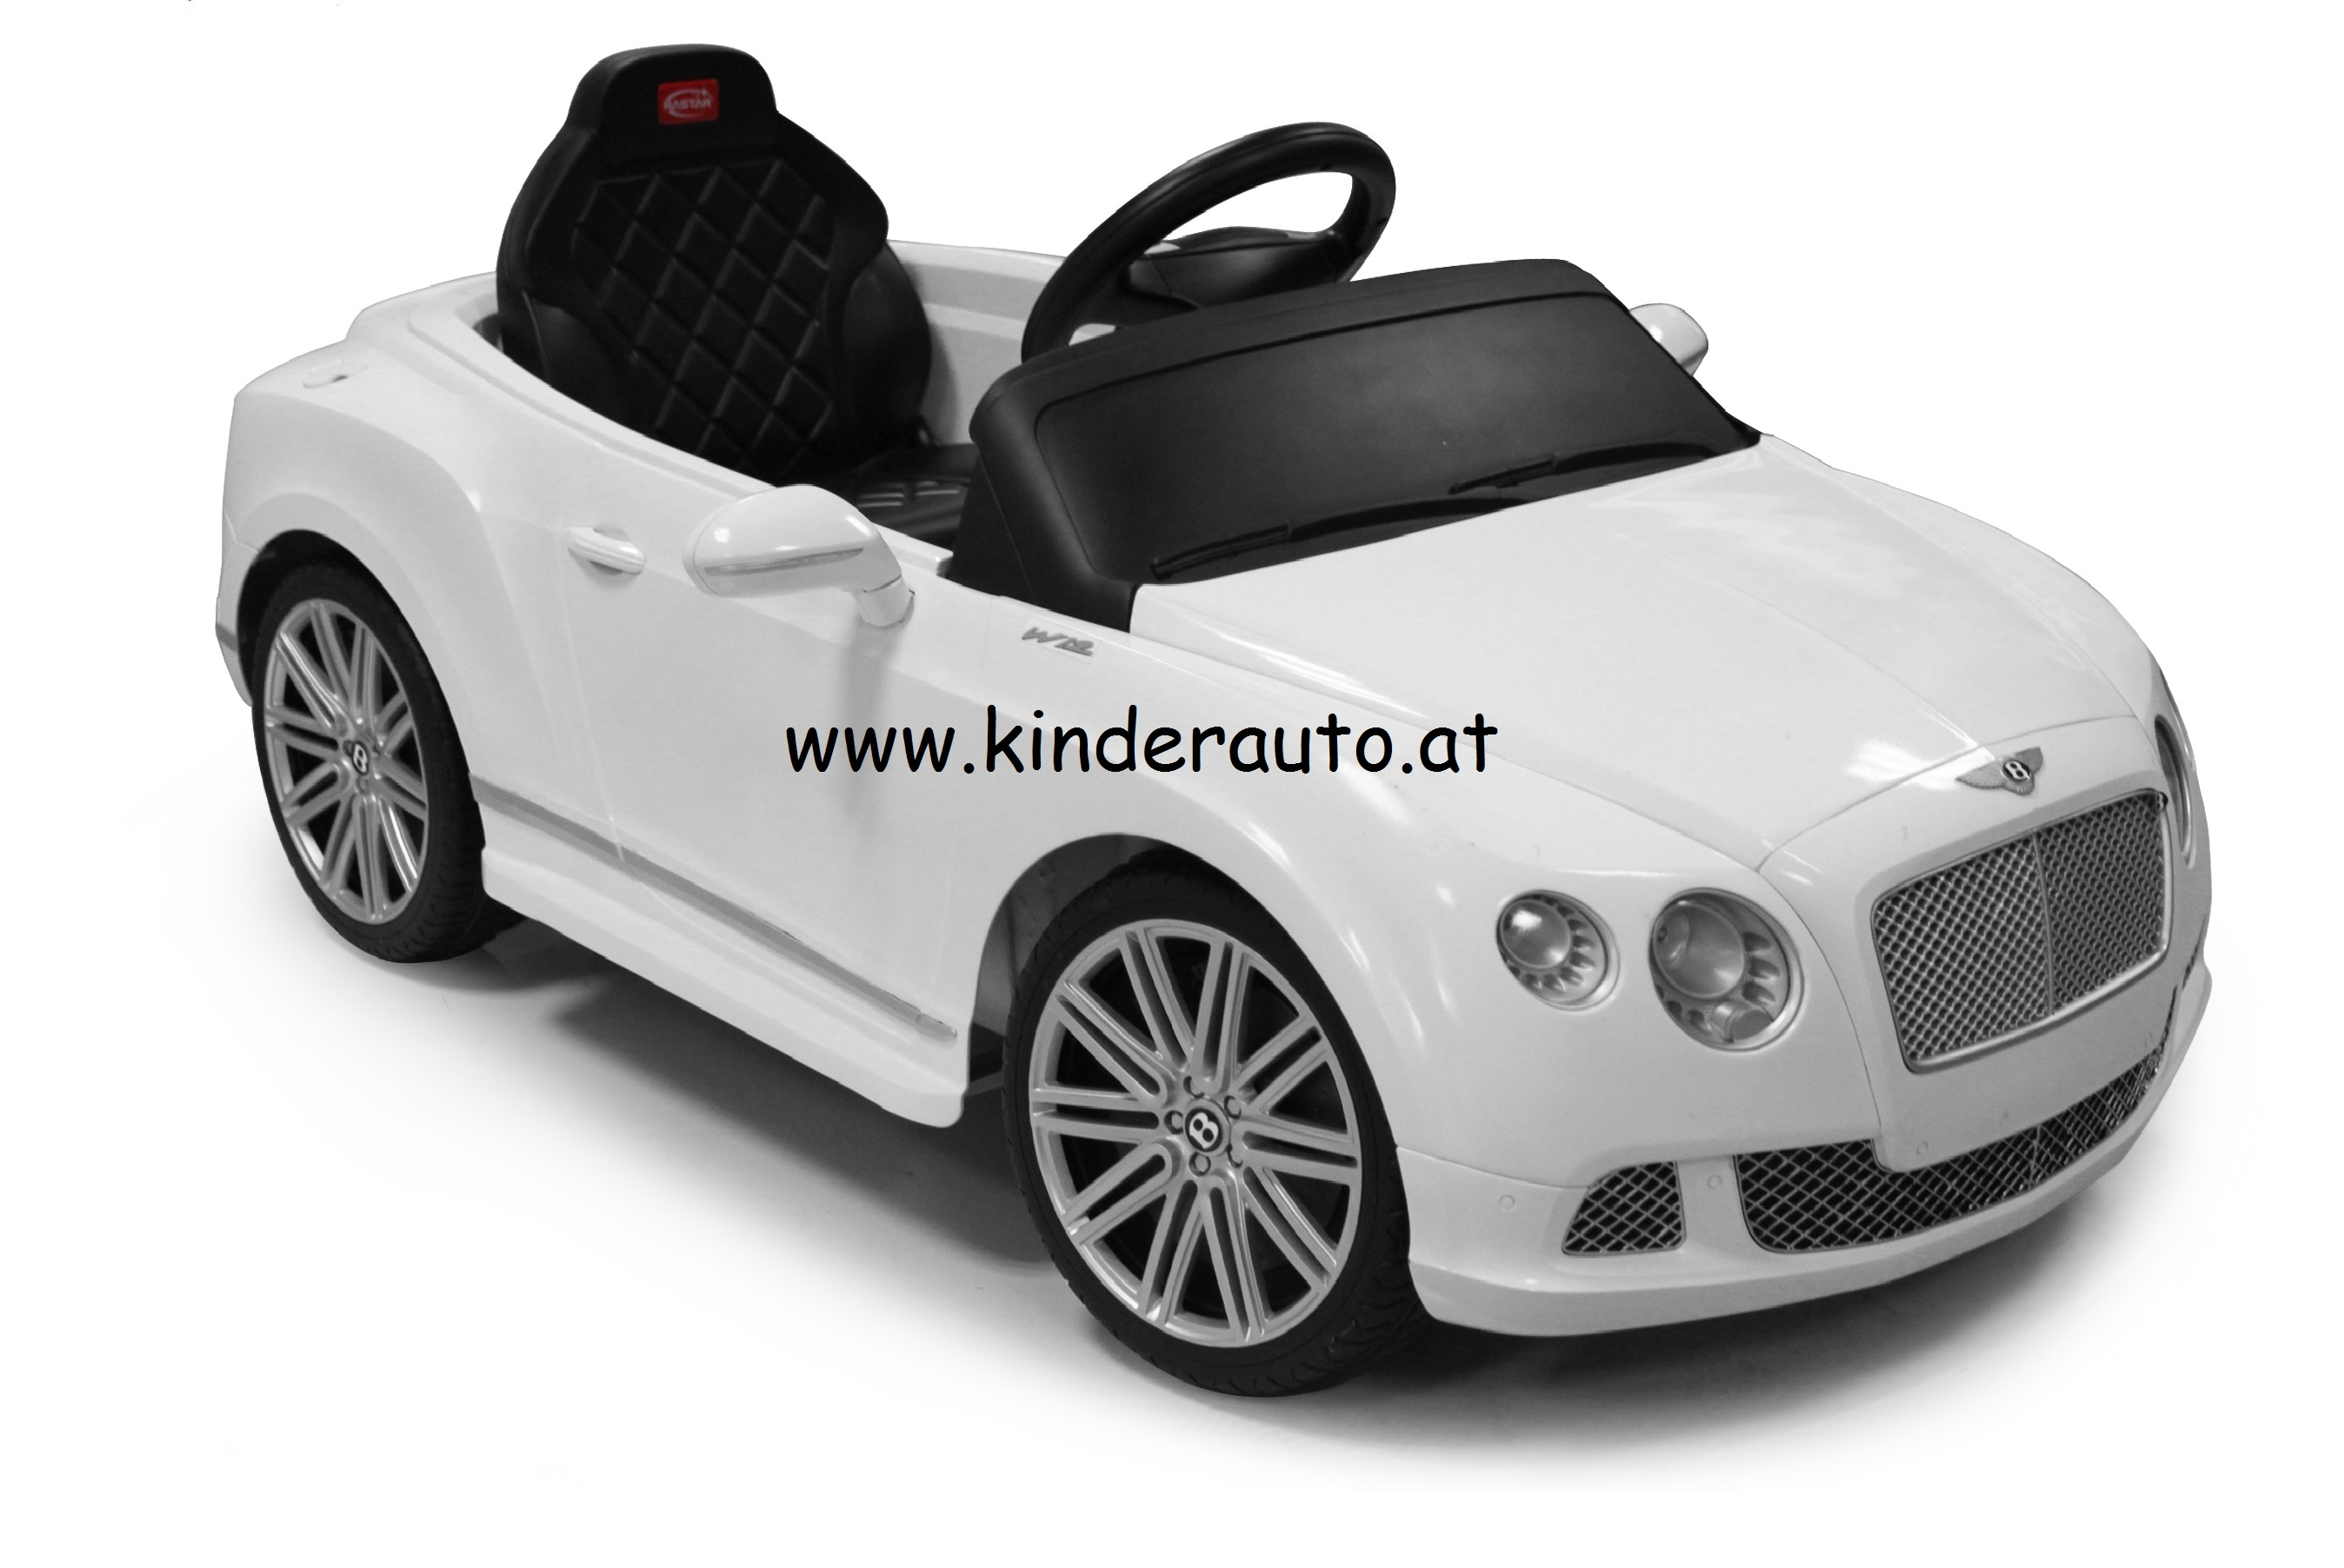 12v bentley gtc wei kinder elektro auto kinderauto online shop. Black Bedroom Furniture Sets. Home Design Ideas